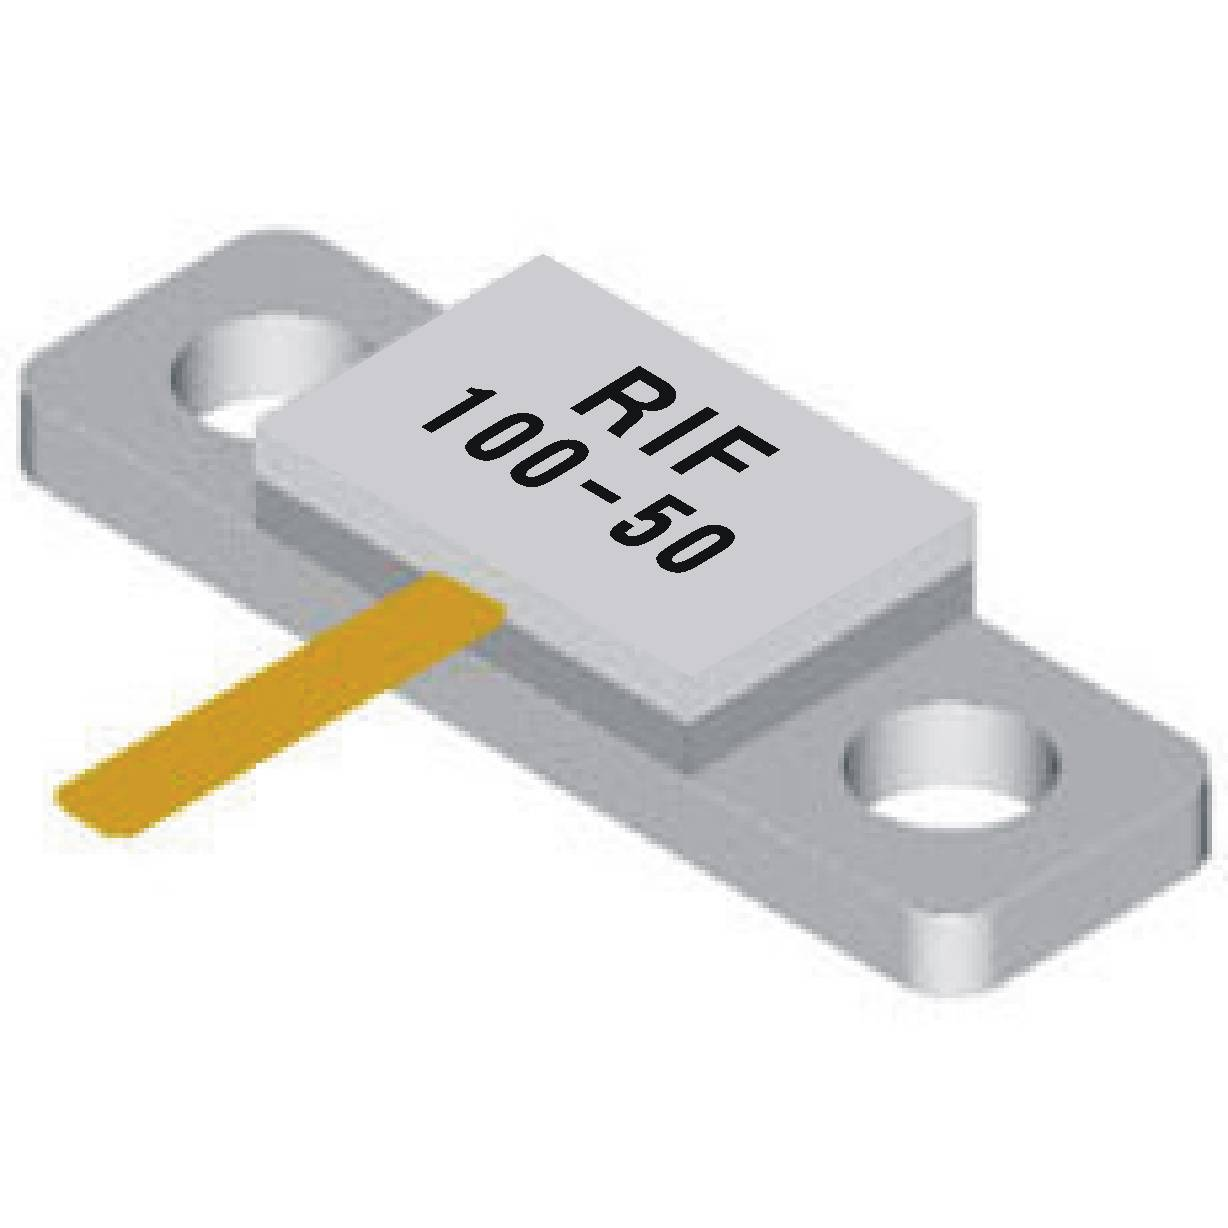 Supply rf microwave communication load resistance with microwave resistance piece power resistor